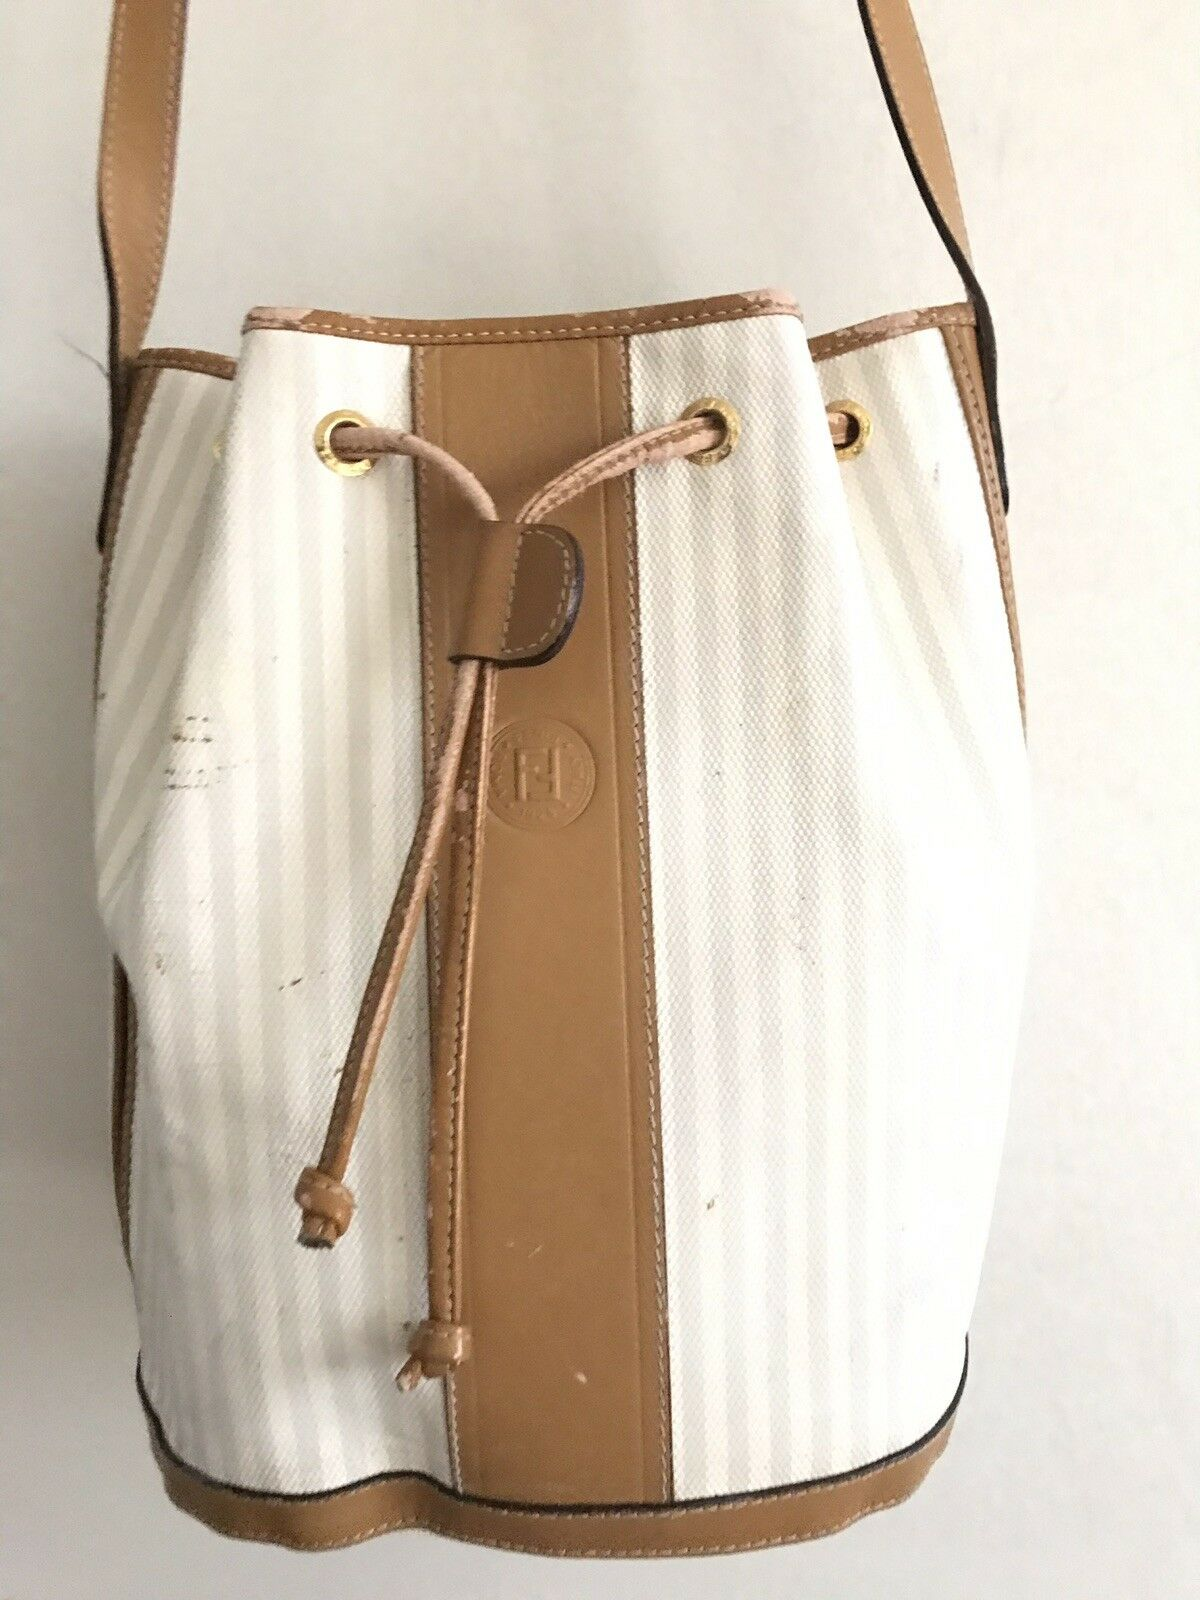 FENDI Vintage White/ Grey Bucket Bag